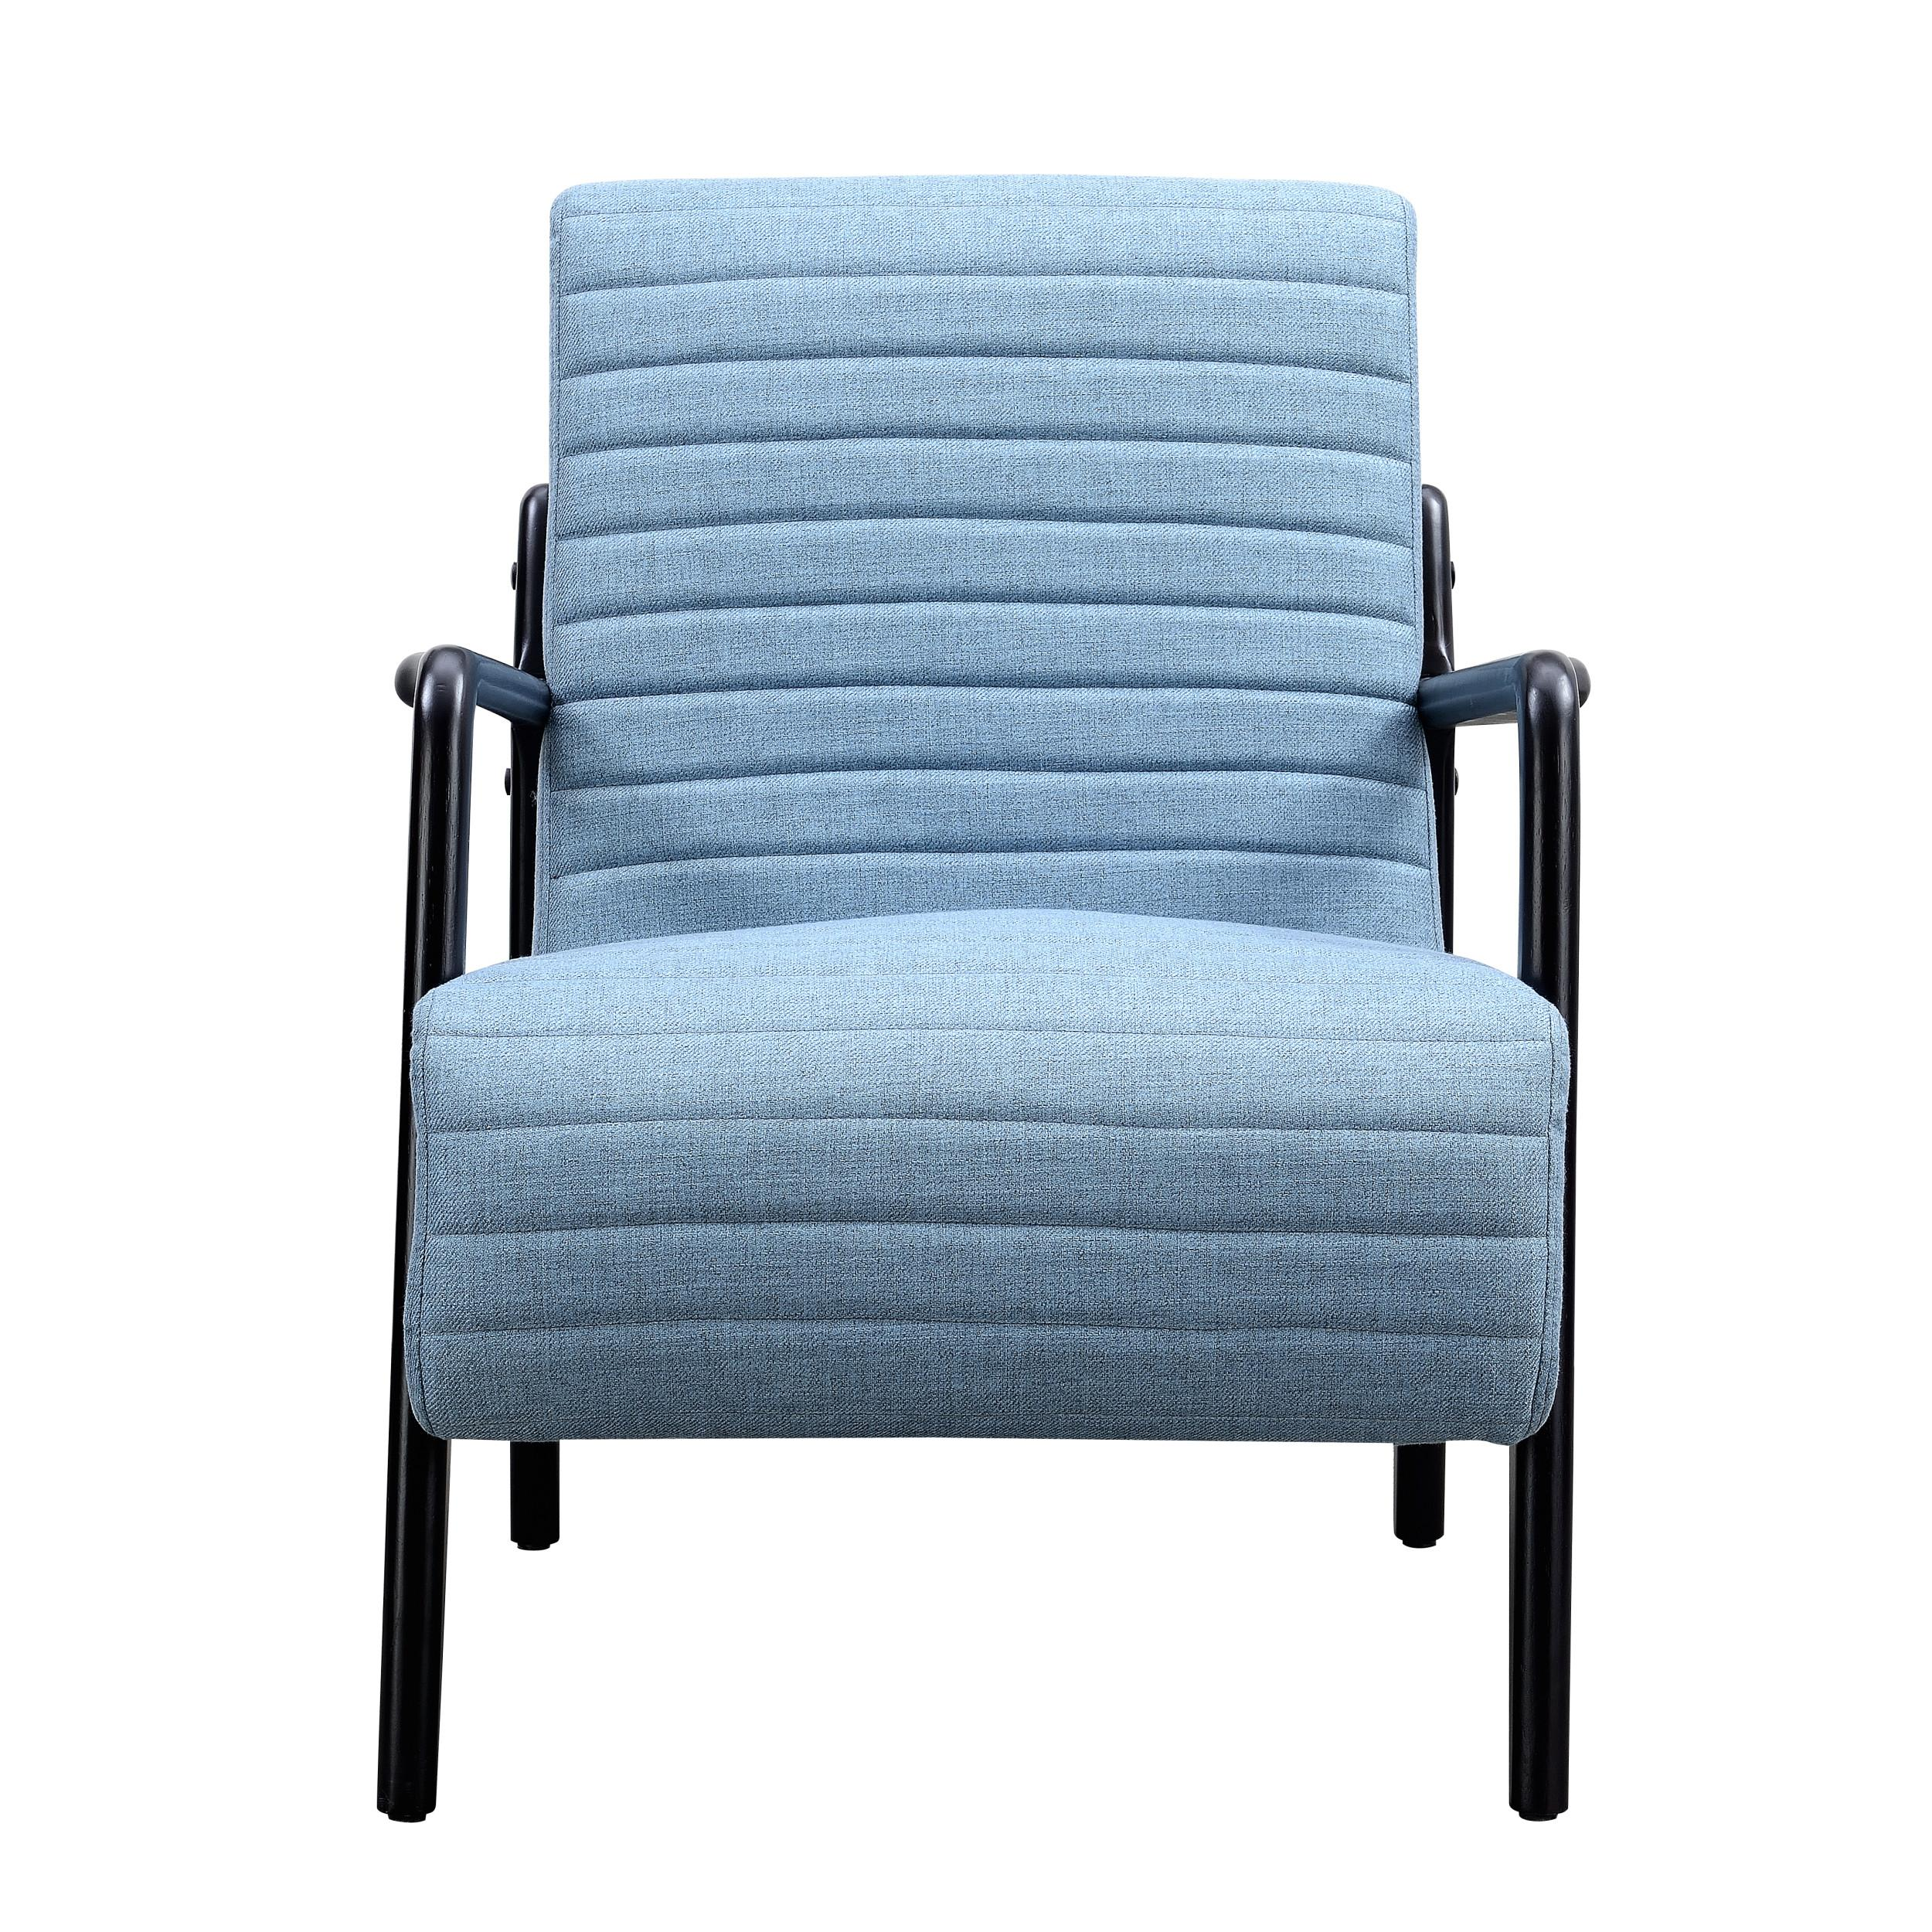 Blue Modern Accent Chairs.Emerald Home Zola Sky Blue Black Fabric Modern Accent Chair